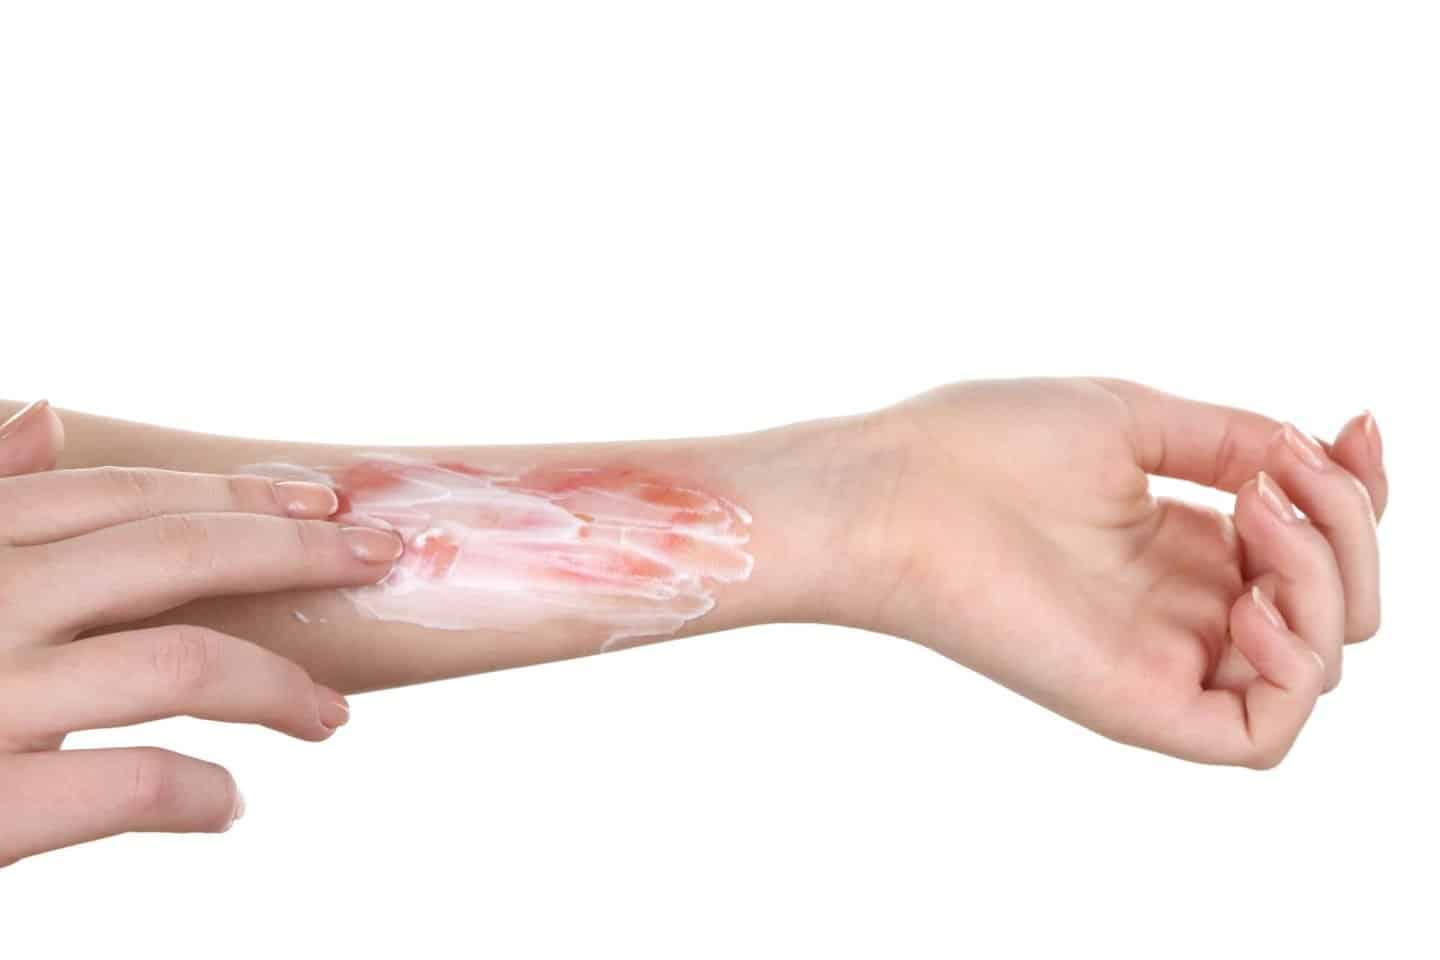 Things to know about burn injuries. Image of a burn on a hand